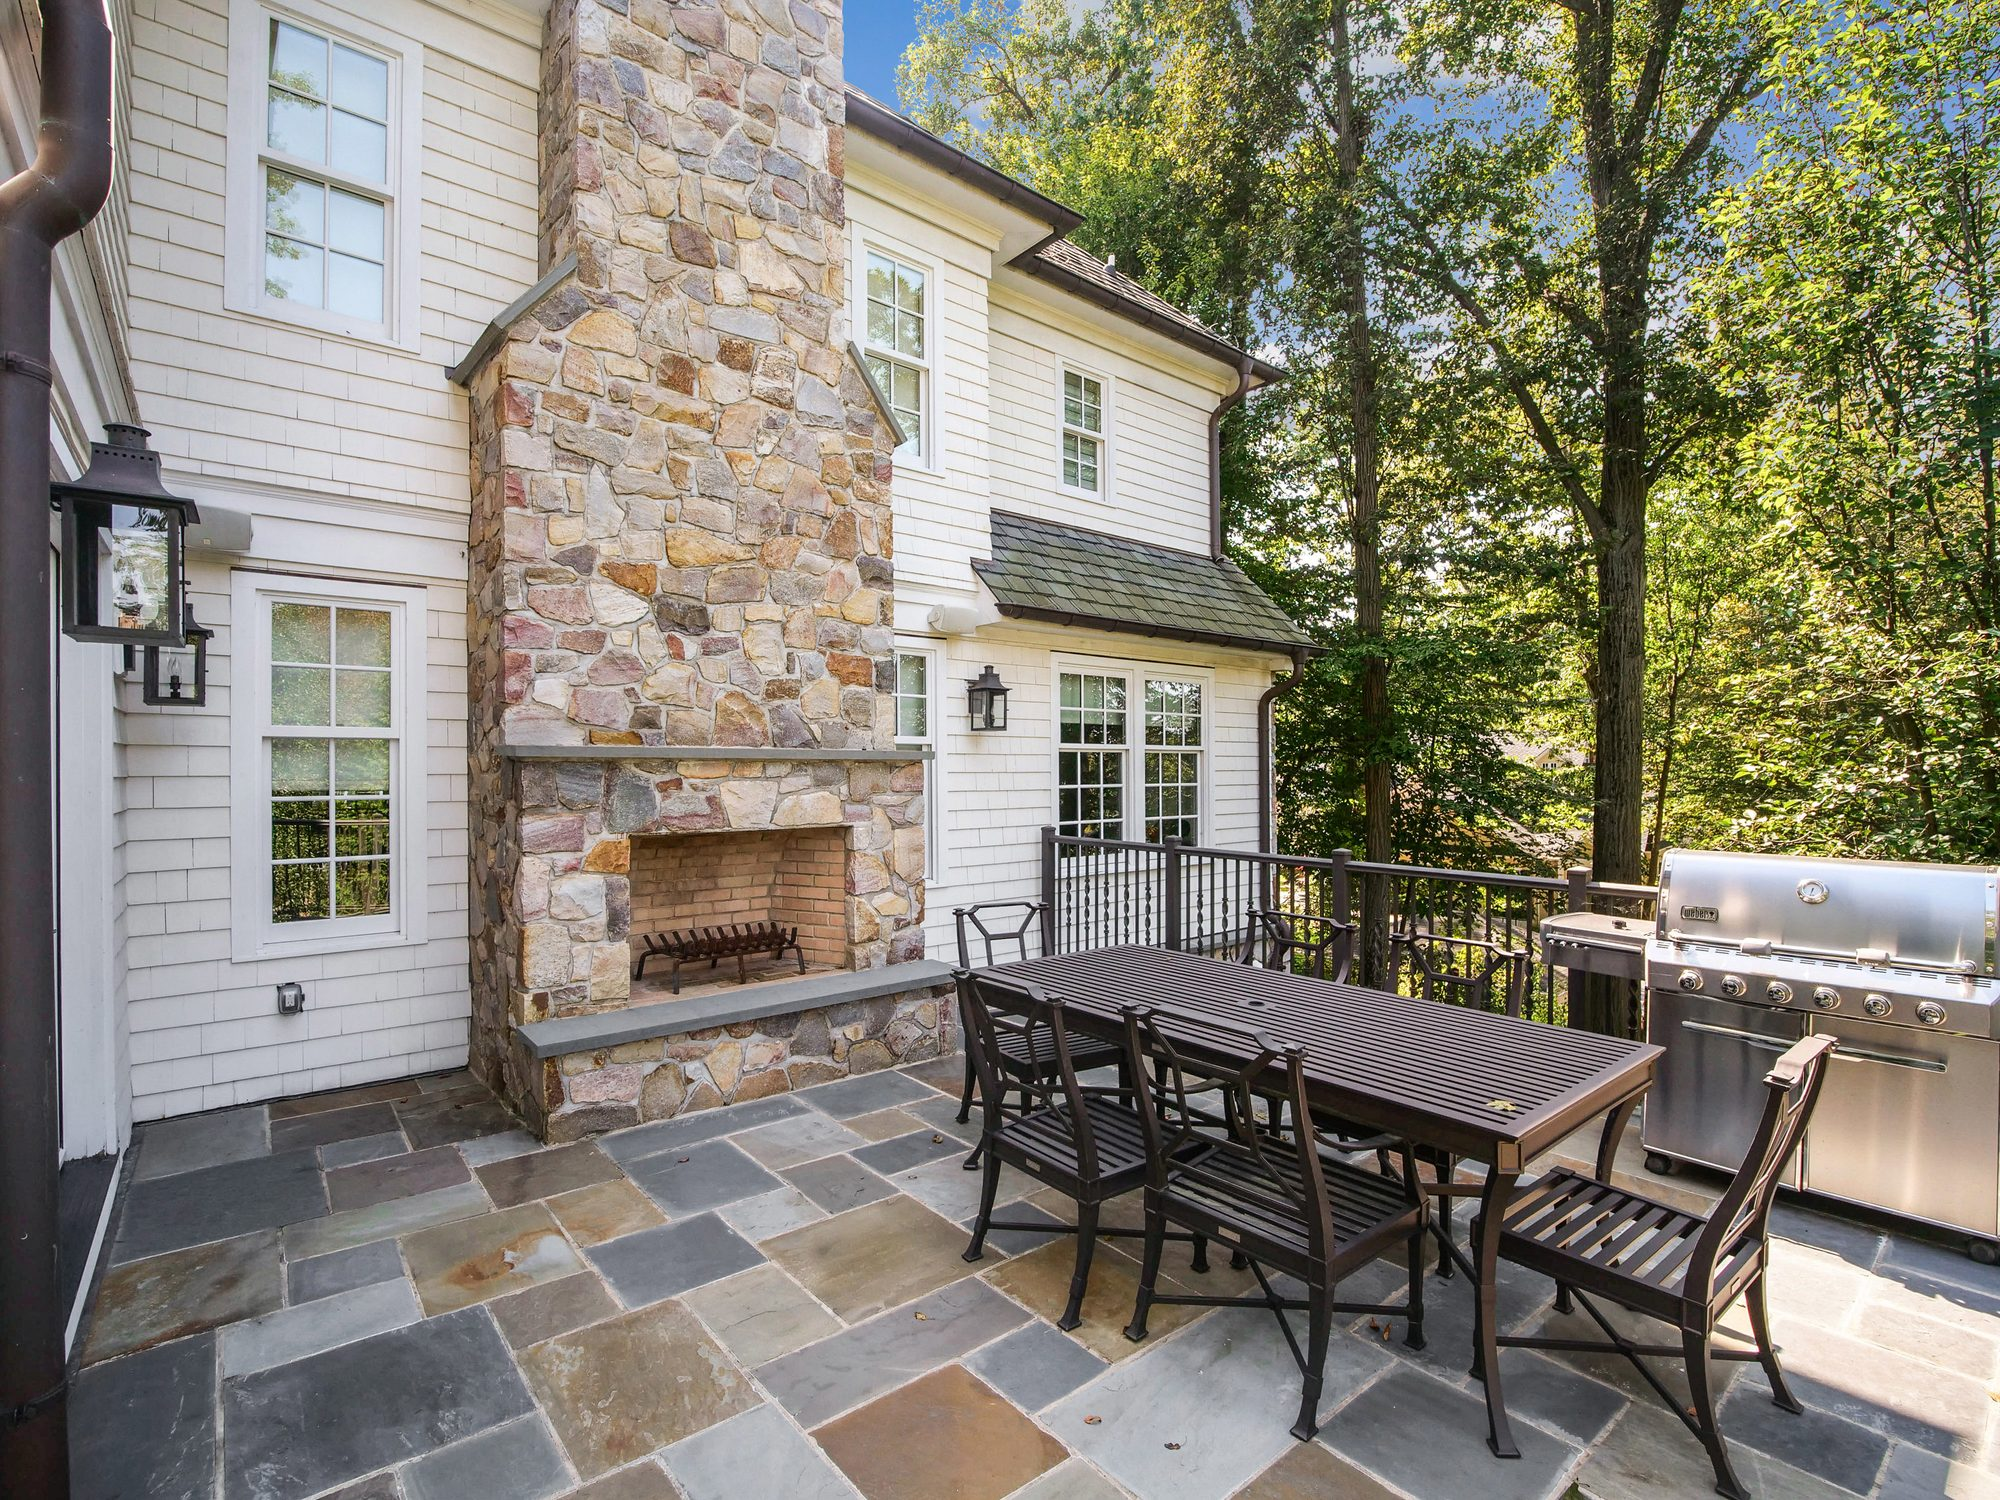 Blue stone patio with a warm colored outdoor fireplace built on the backside of the homes chimney.